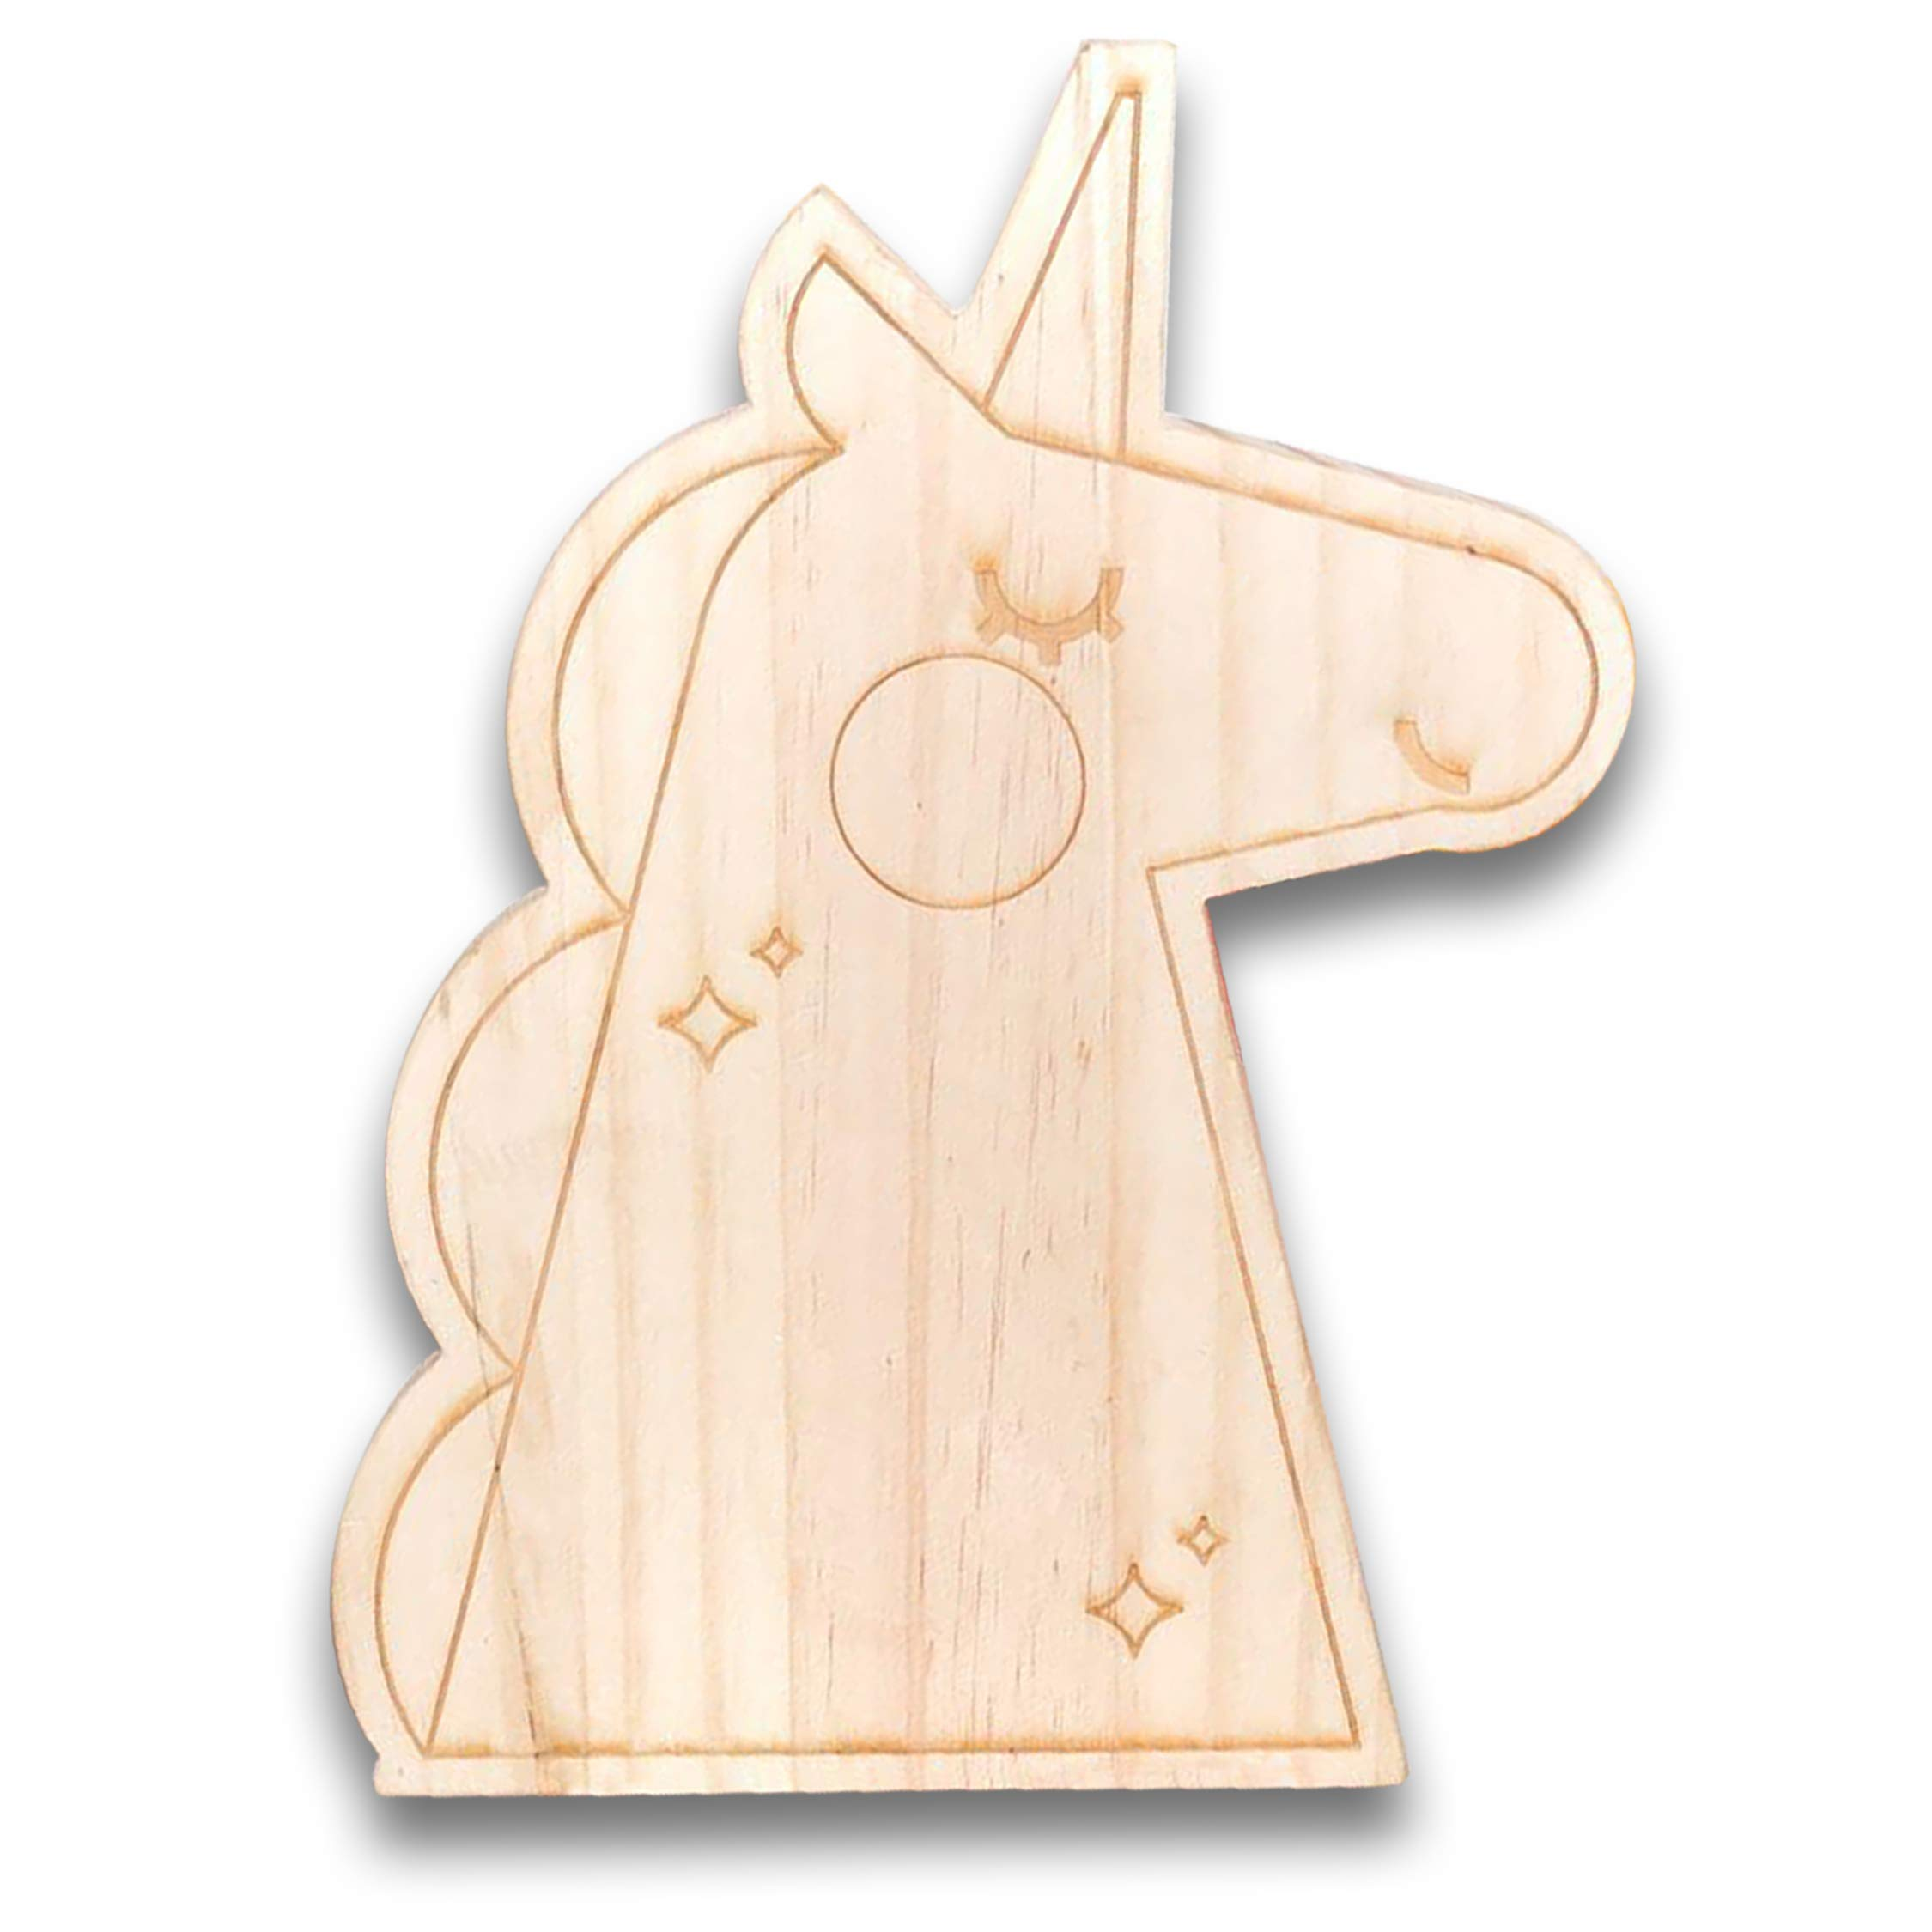 Pillow & Toast Unicorn Cake Wood Party Plate, Birthday Gift Magical Serving Trays for Parties Brunch and Breakfast, Unicorn Kids Gifts by Pillow & Toast (Image #1)